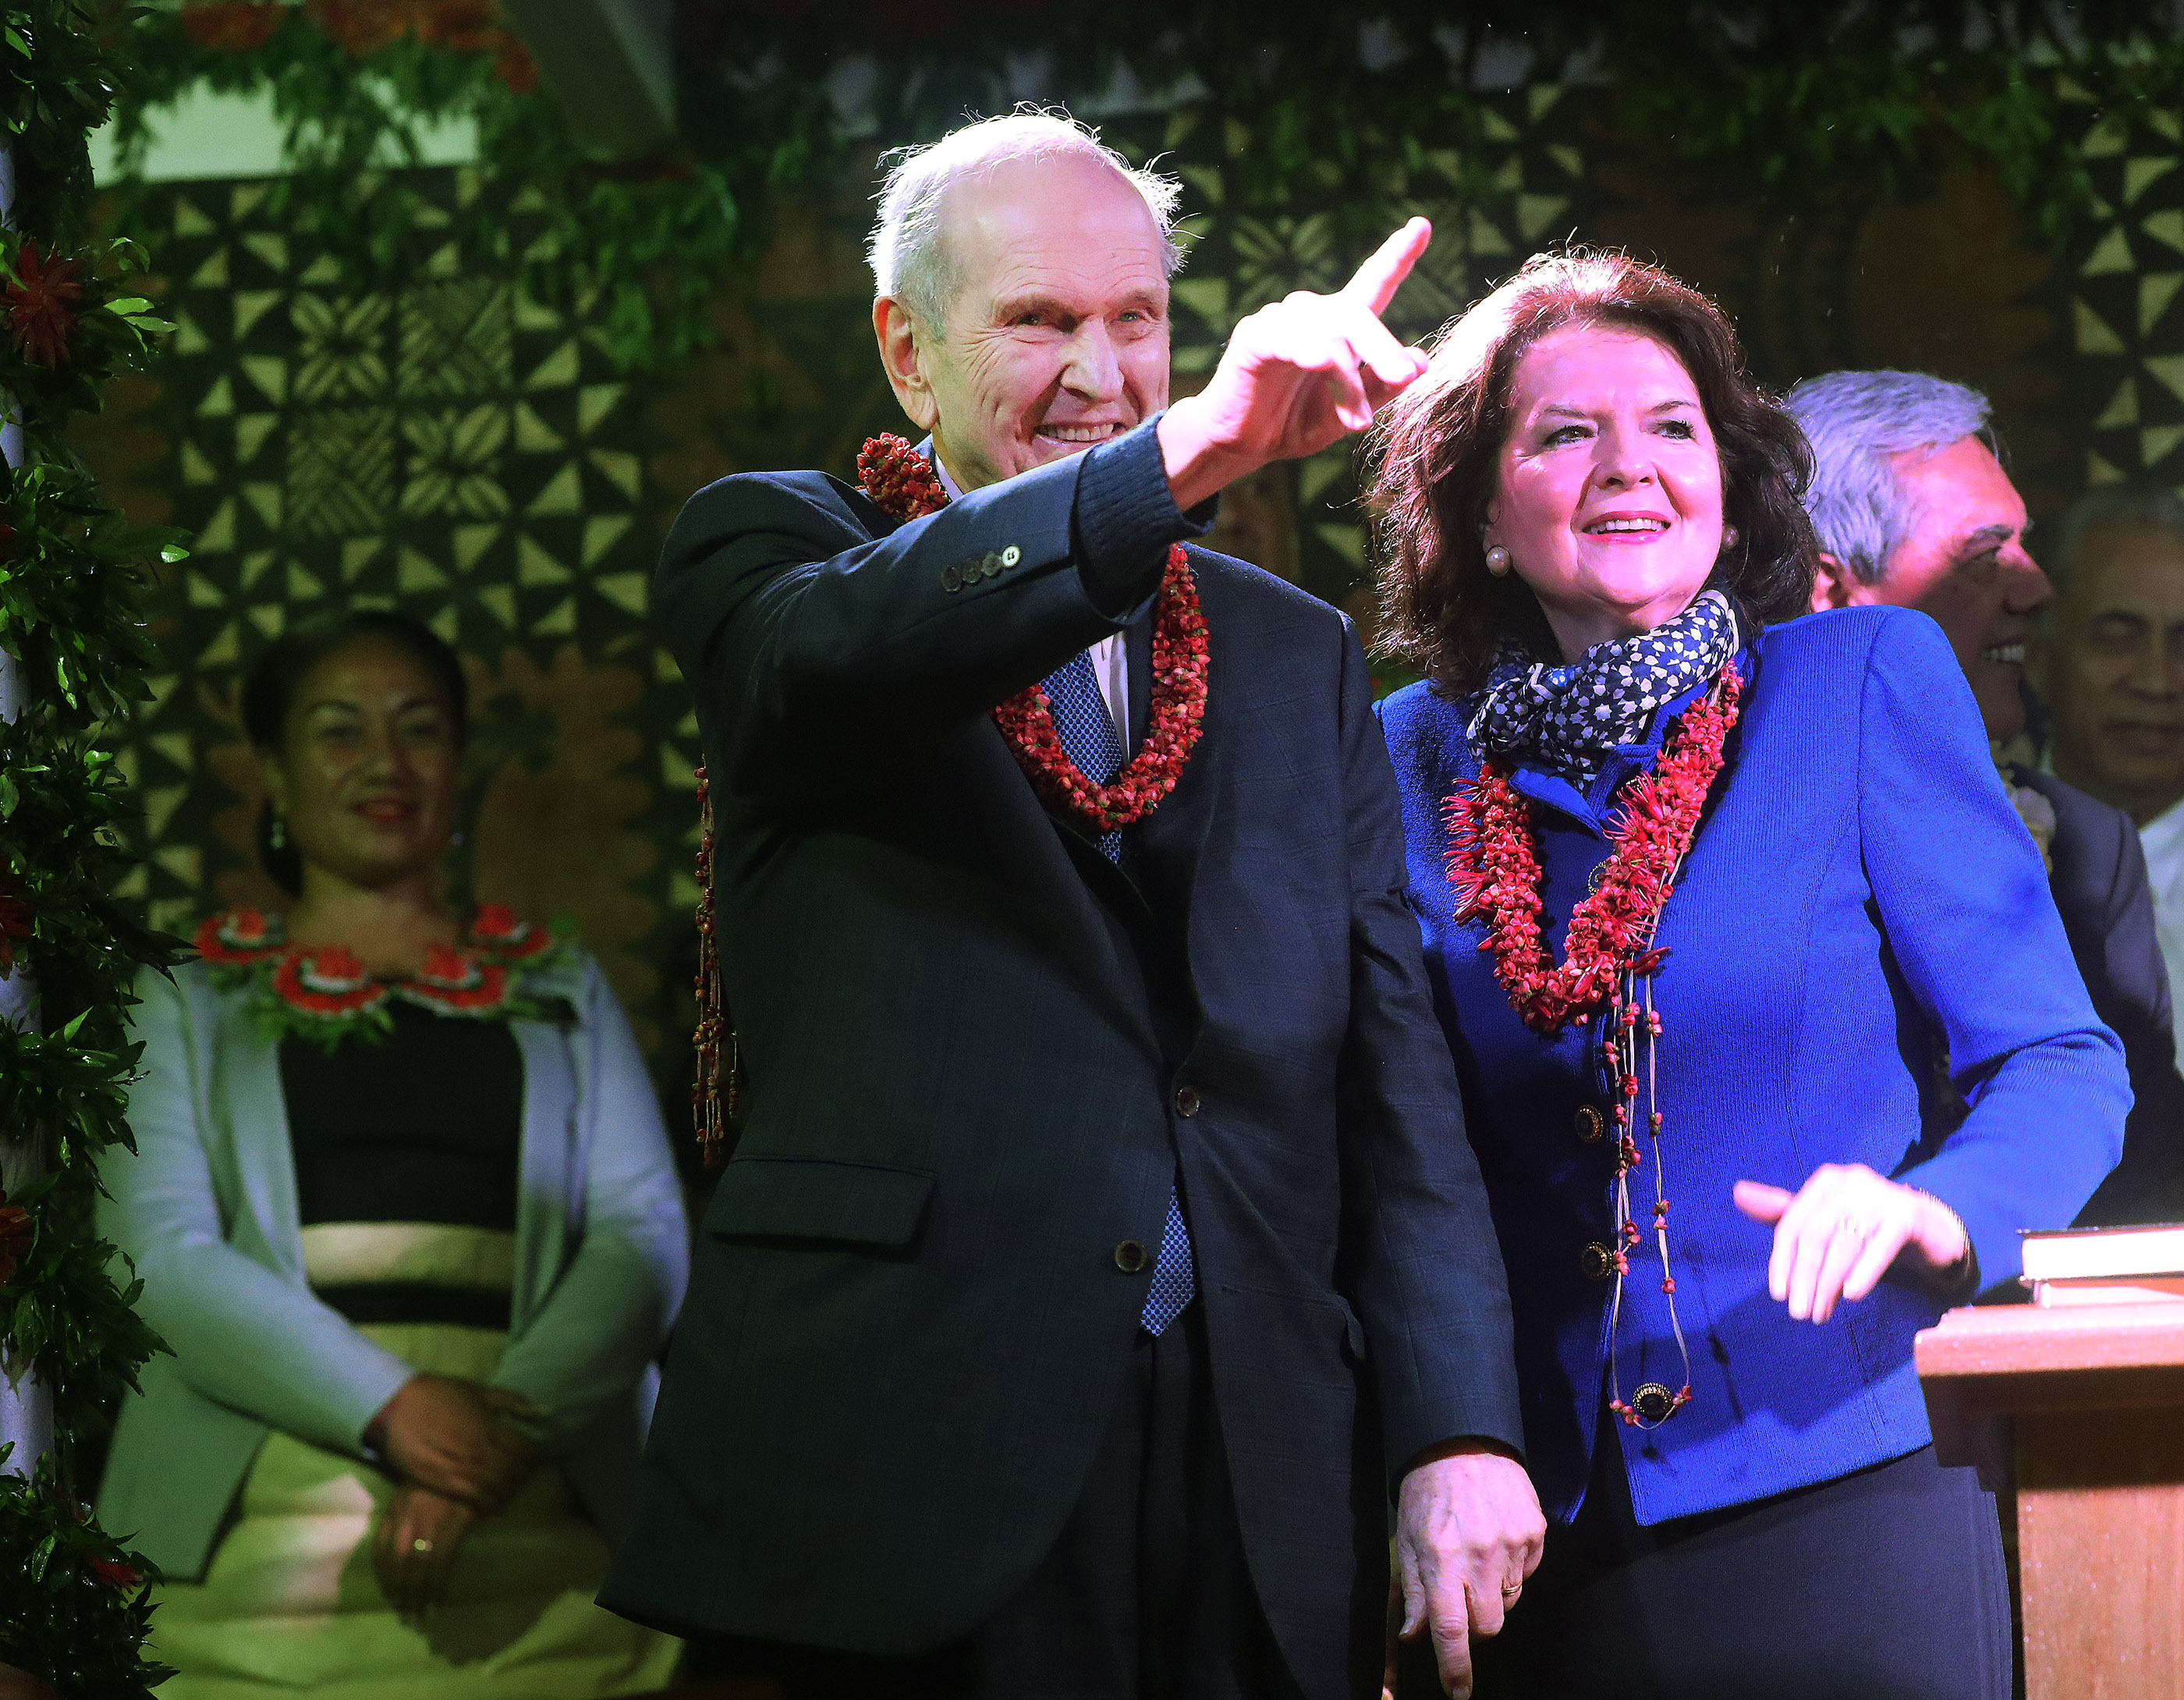 President Russell M. Nelson of The Church of Jesus Christ of Latter-day Saints and his wife, Sister Wendy Nelson, wave after a devotional in Nuku'alofa, Tonga, on May 23, 2019.